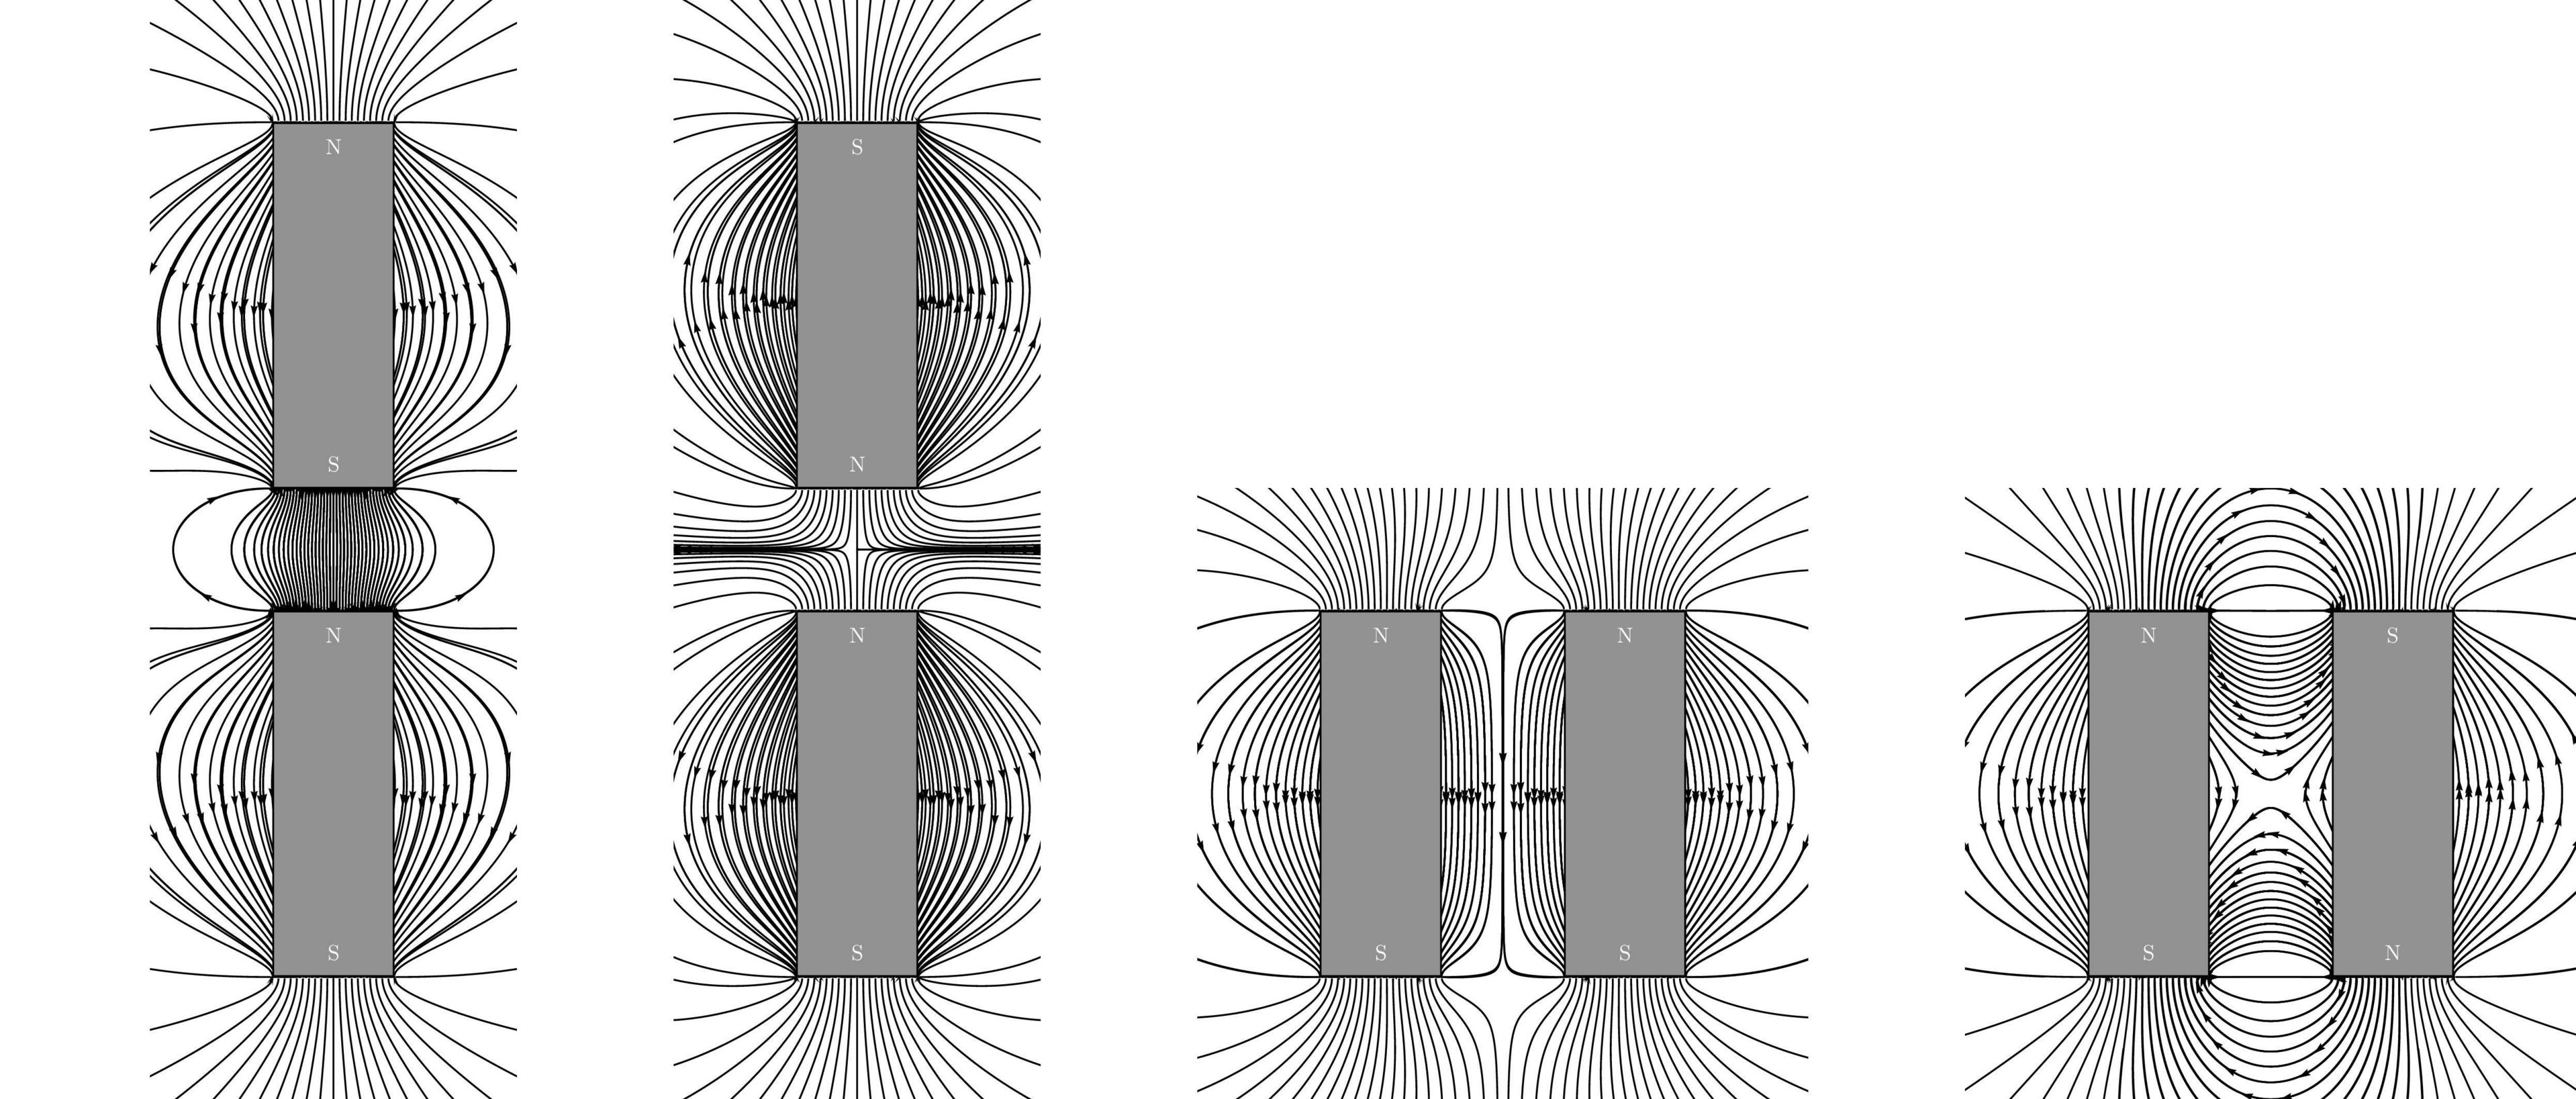 Pstricks Magnetic Field Lines Of A Bar Magnet